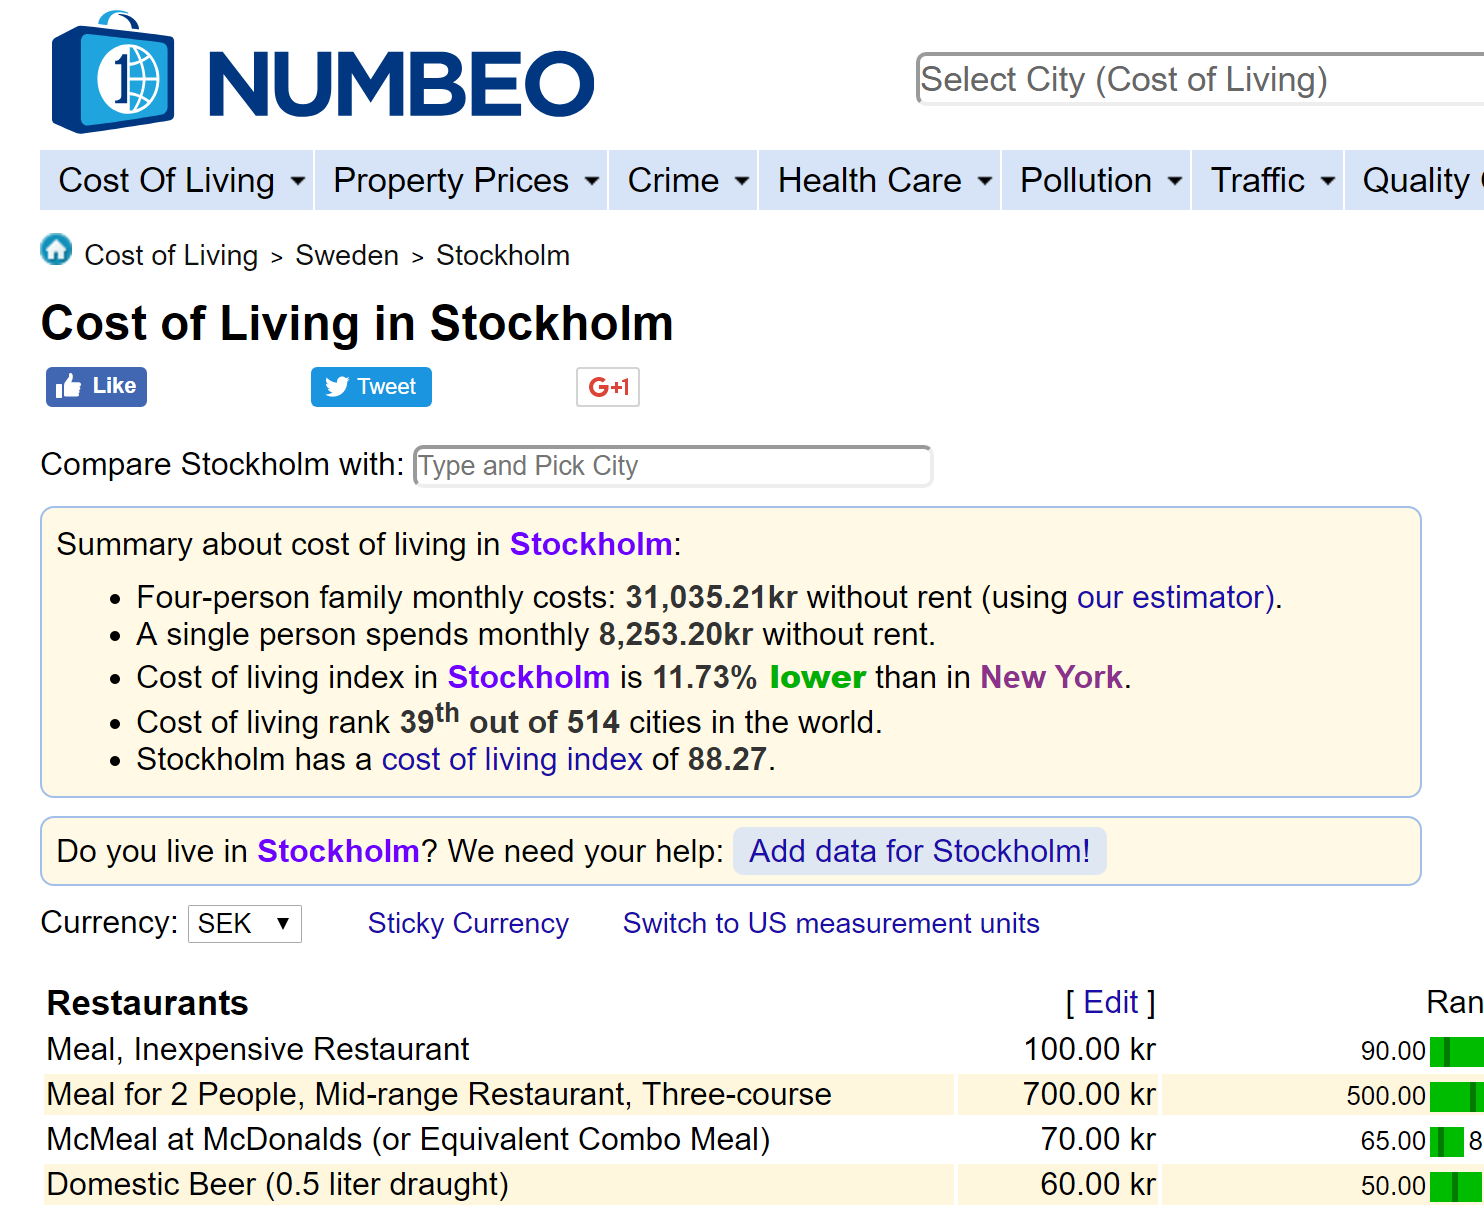 https://www.numbeo.com/cost-of-living/in/Stockholm